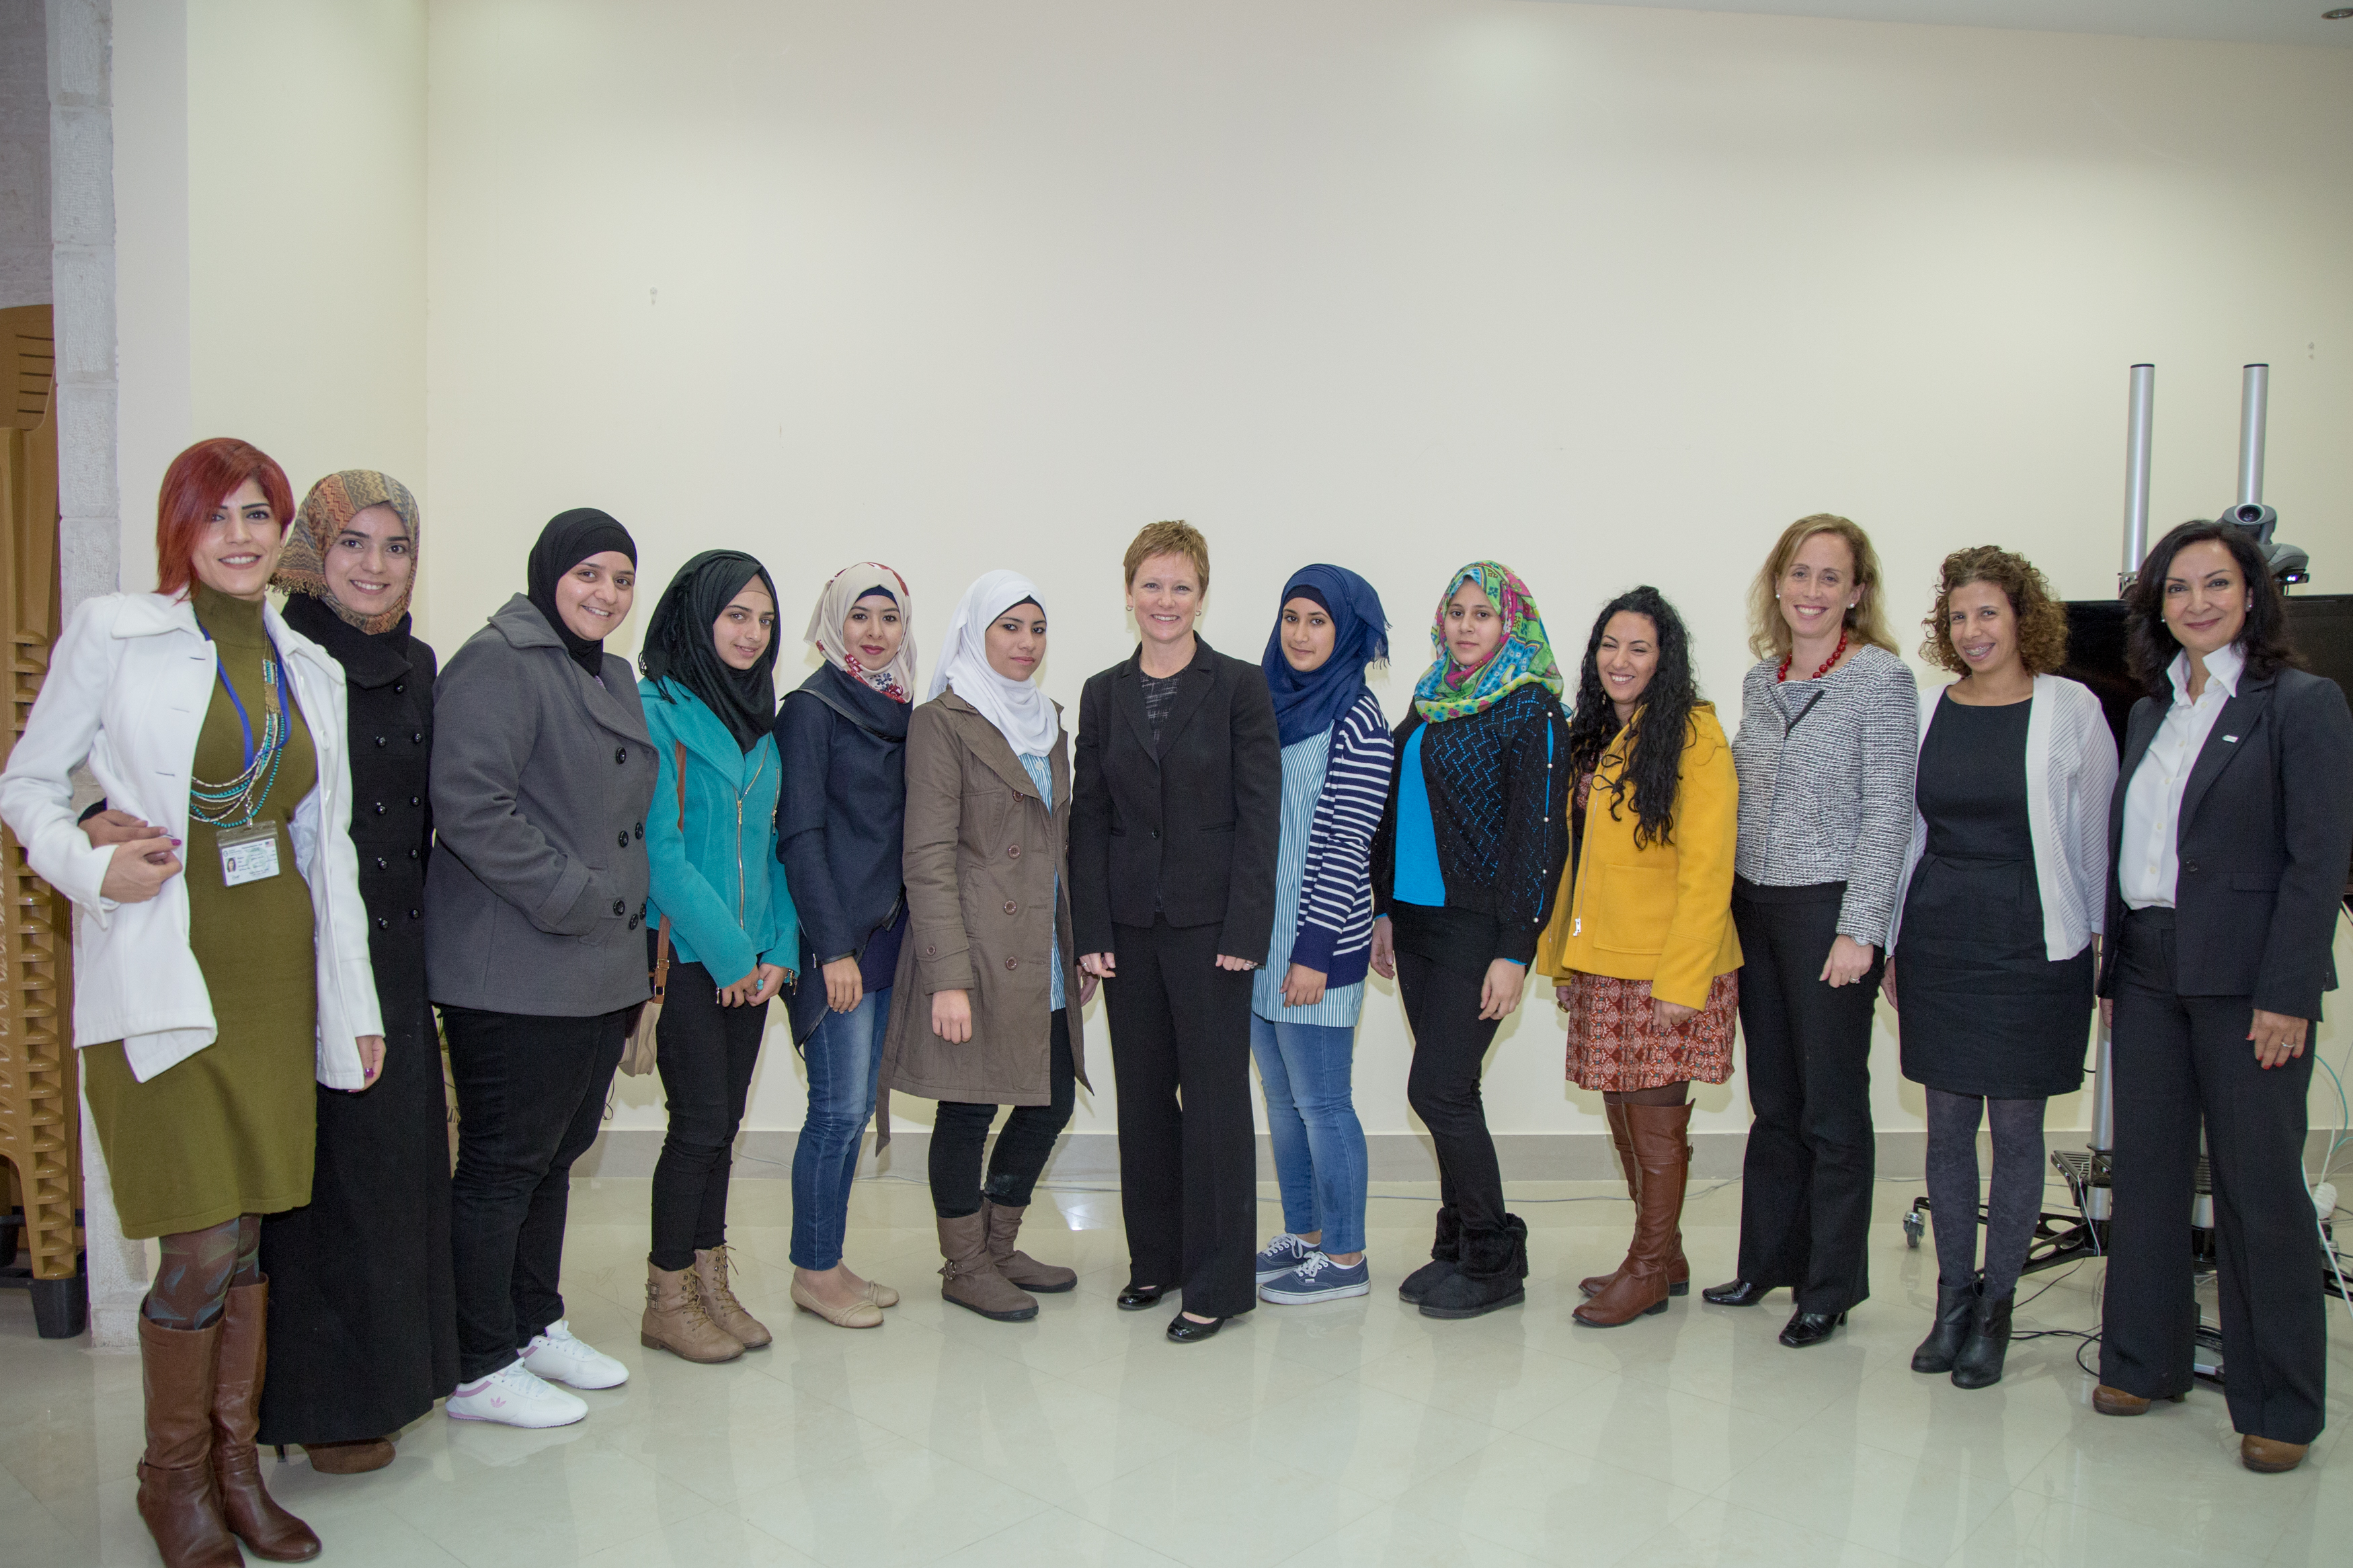 Susan takes a photo with  participants of a youth council roundtable in West Bank, Gaza. /  Global Communities